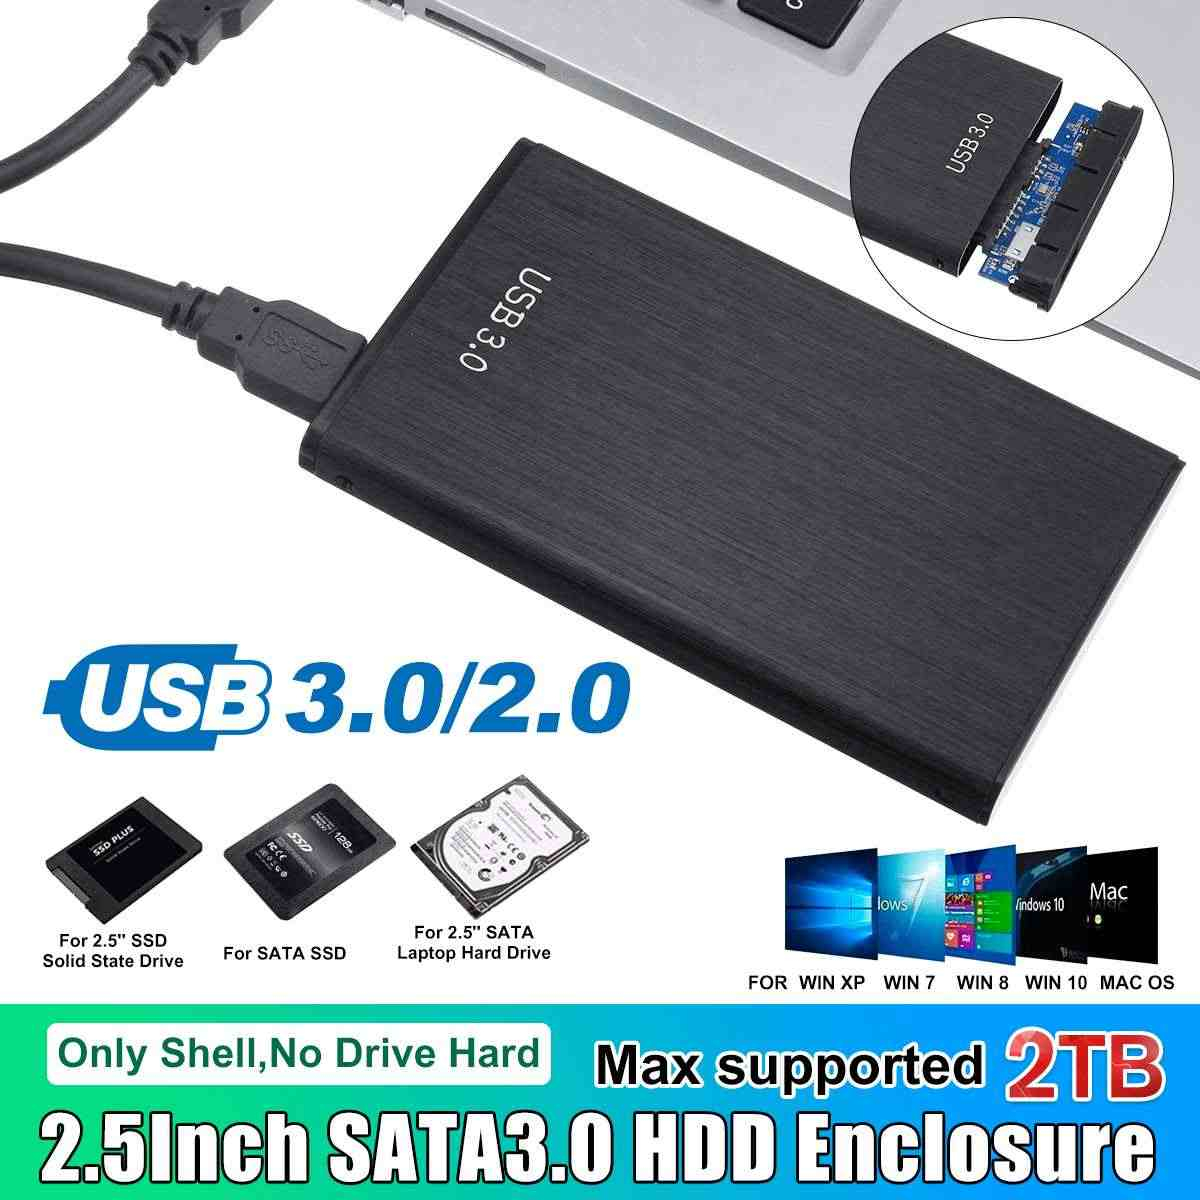 Leory HDD Case 2.5 SATA Ke USB 3.0 2.0 Adaptor Hard Drive Enclosure Support 2TB untuk SSD Disk Kotak kasus HD Eksternal HDD Kandang